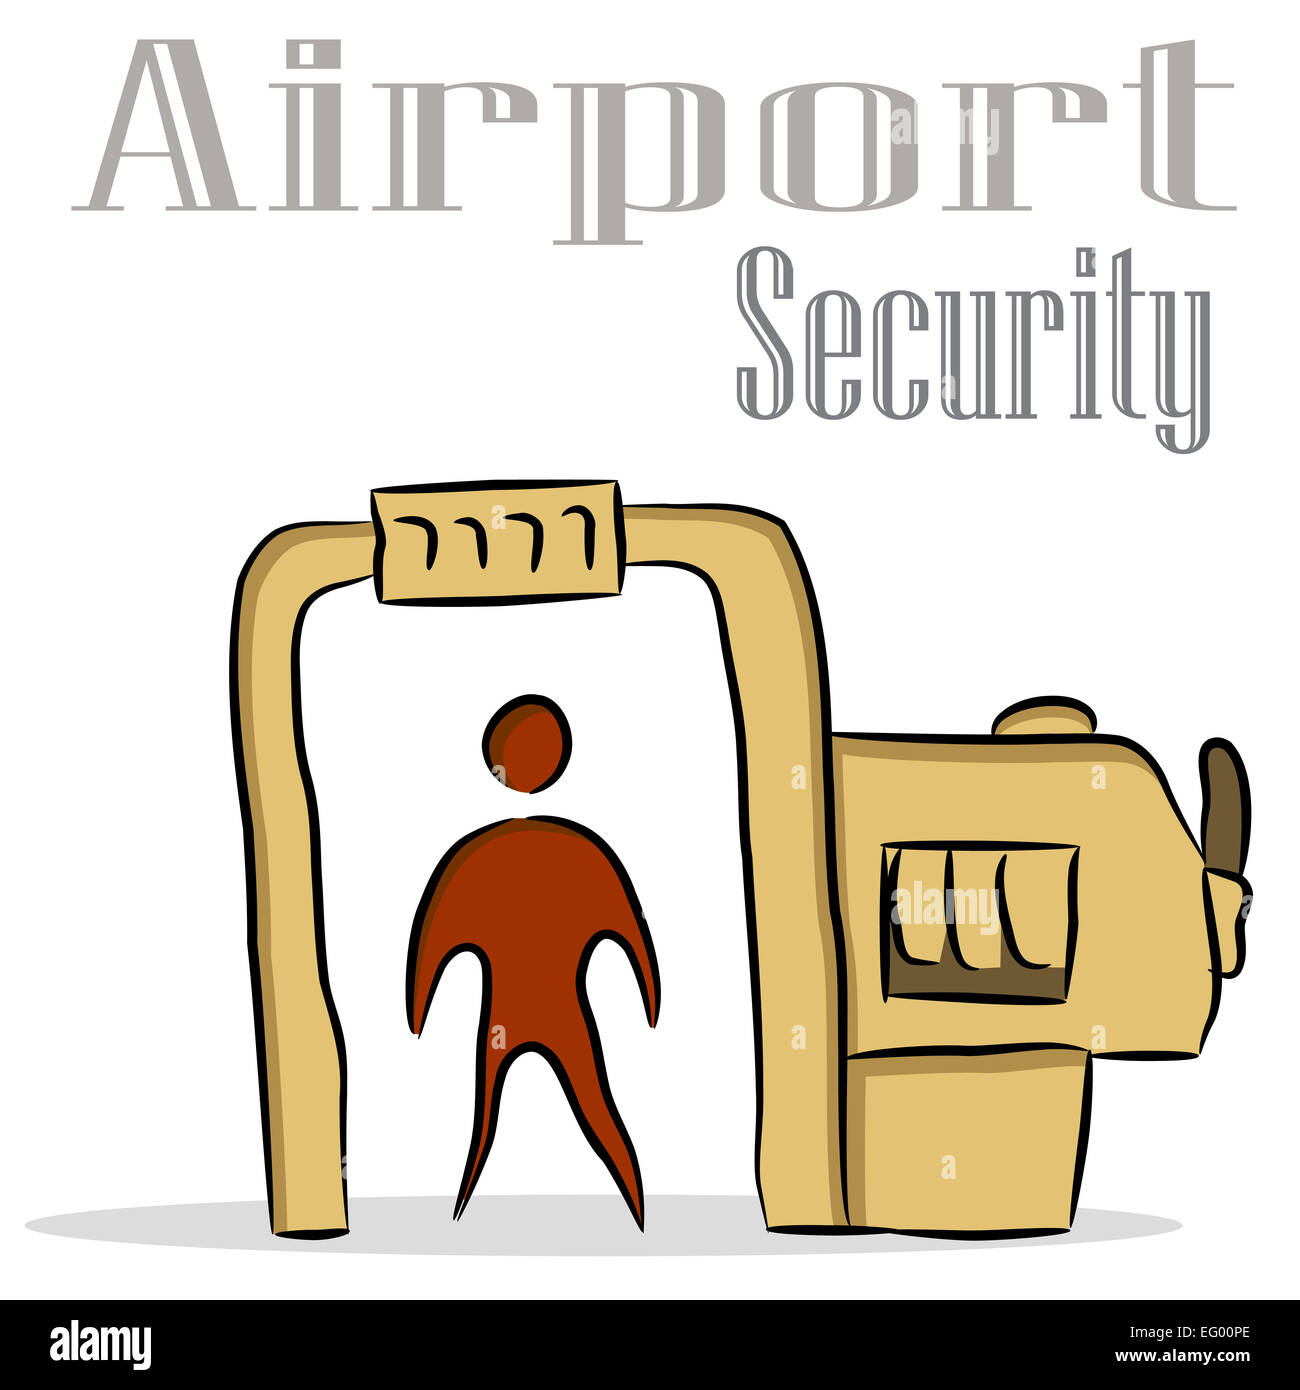 An Image Of An Airport Security Drawing Stock Photo Alamy